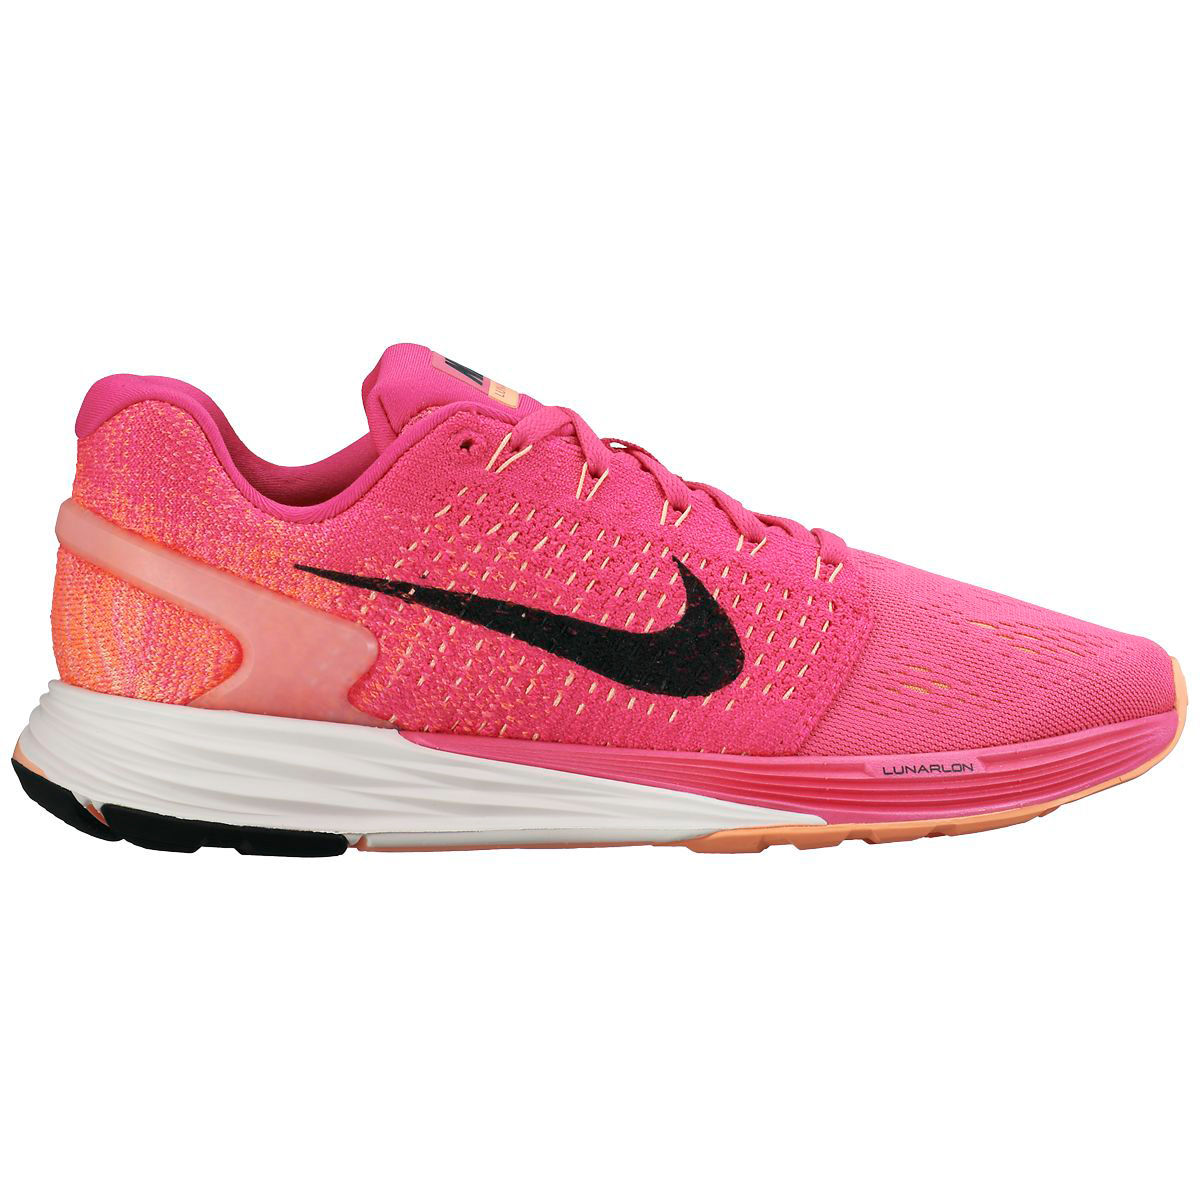 Stability Adidas Running Shoes Womens Uk